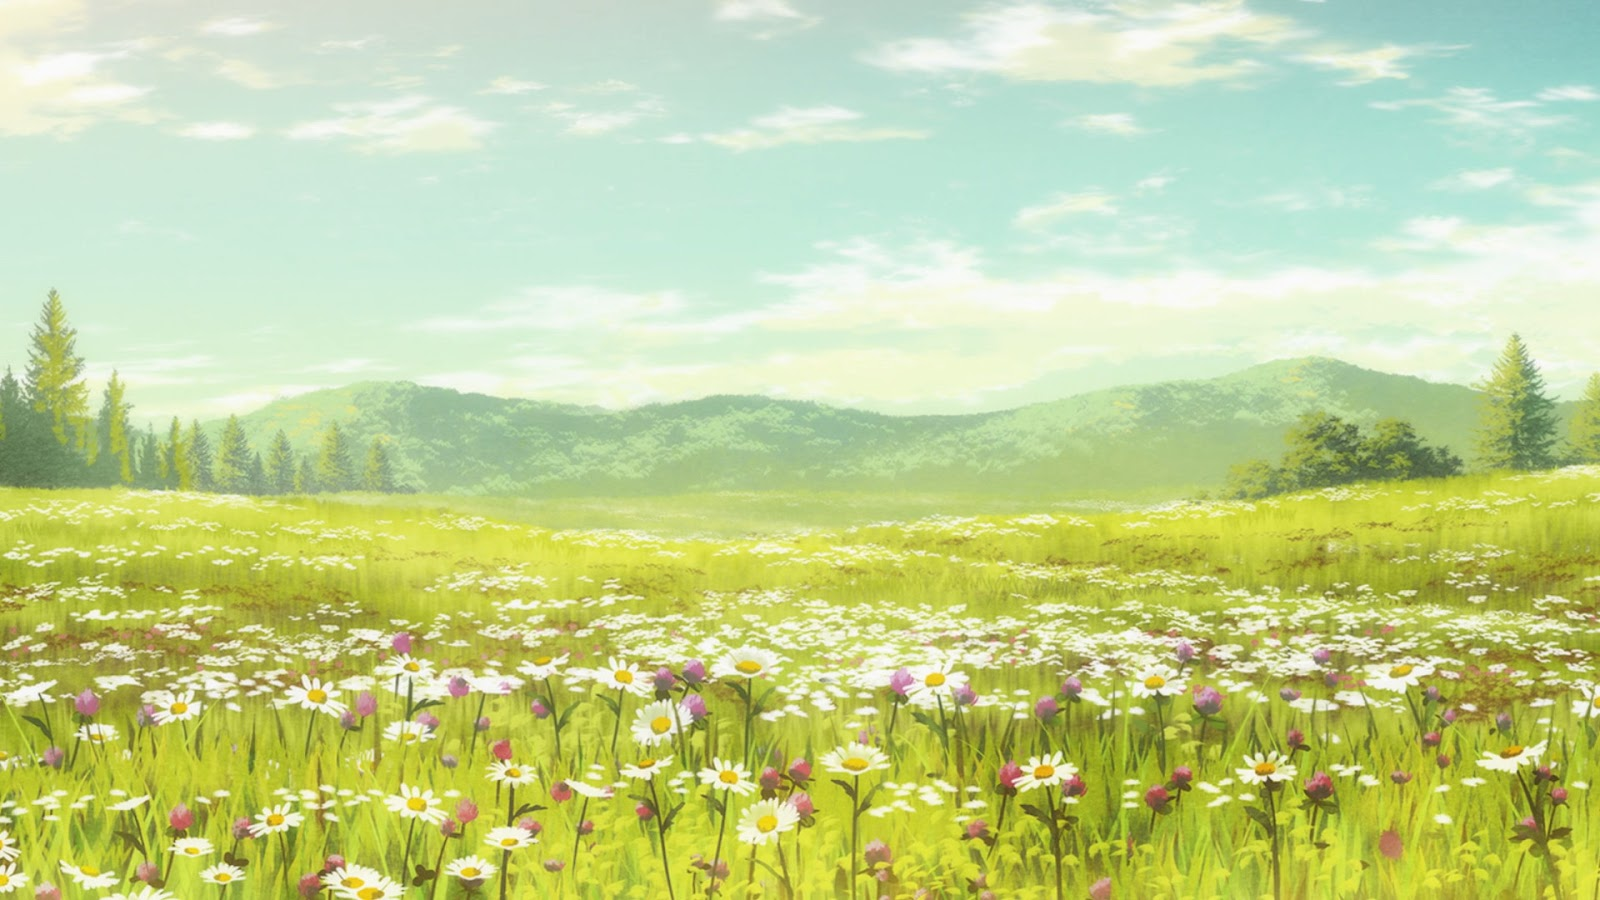 Hd wallpapers and background images Anime Landscape: Cute Anime Flower Field Background